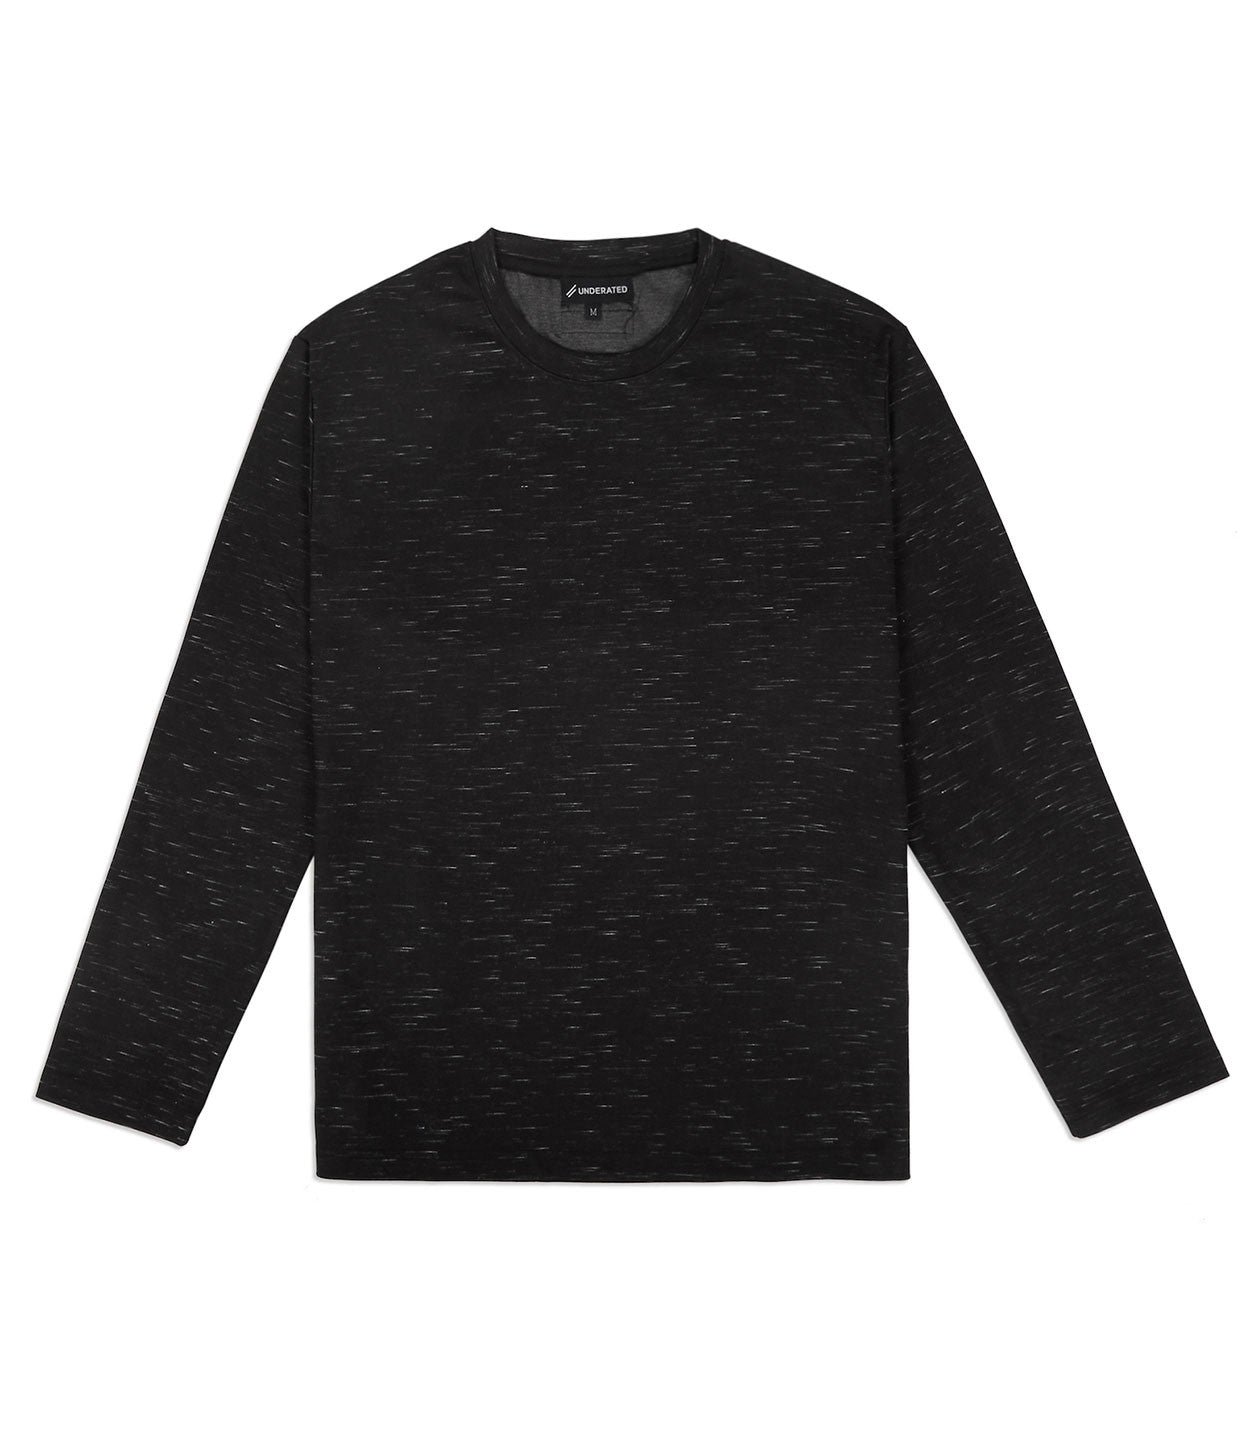 TS379 Knit Jersey L/S Tee - Black - underated london - underatedco - 1